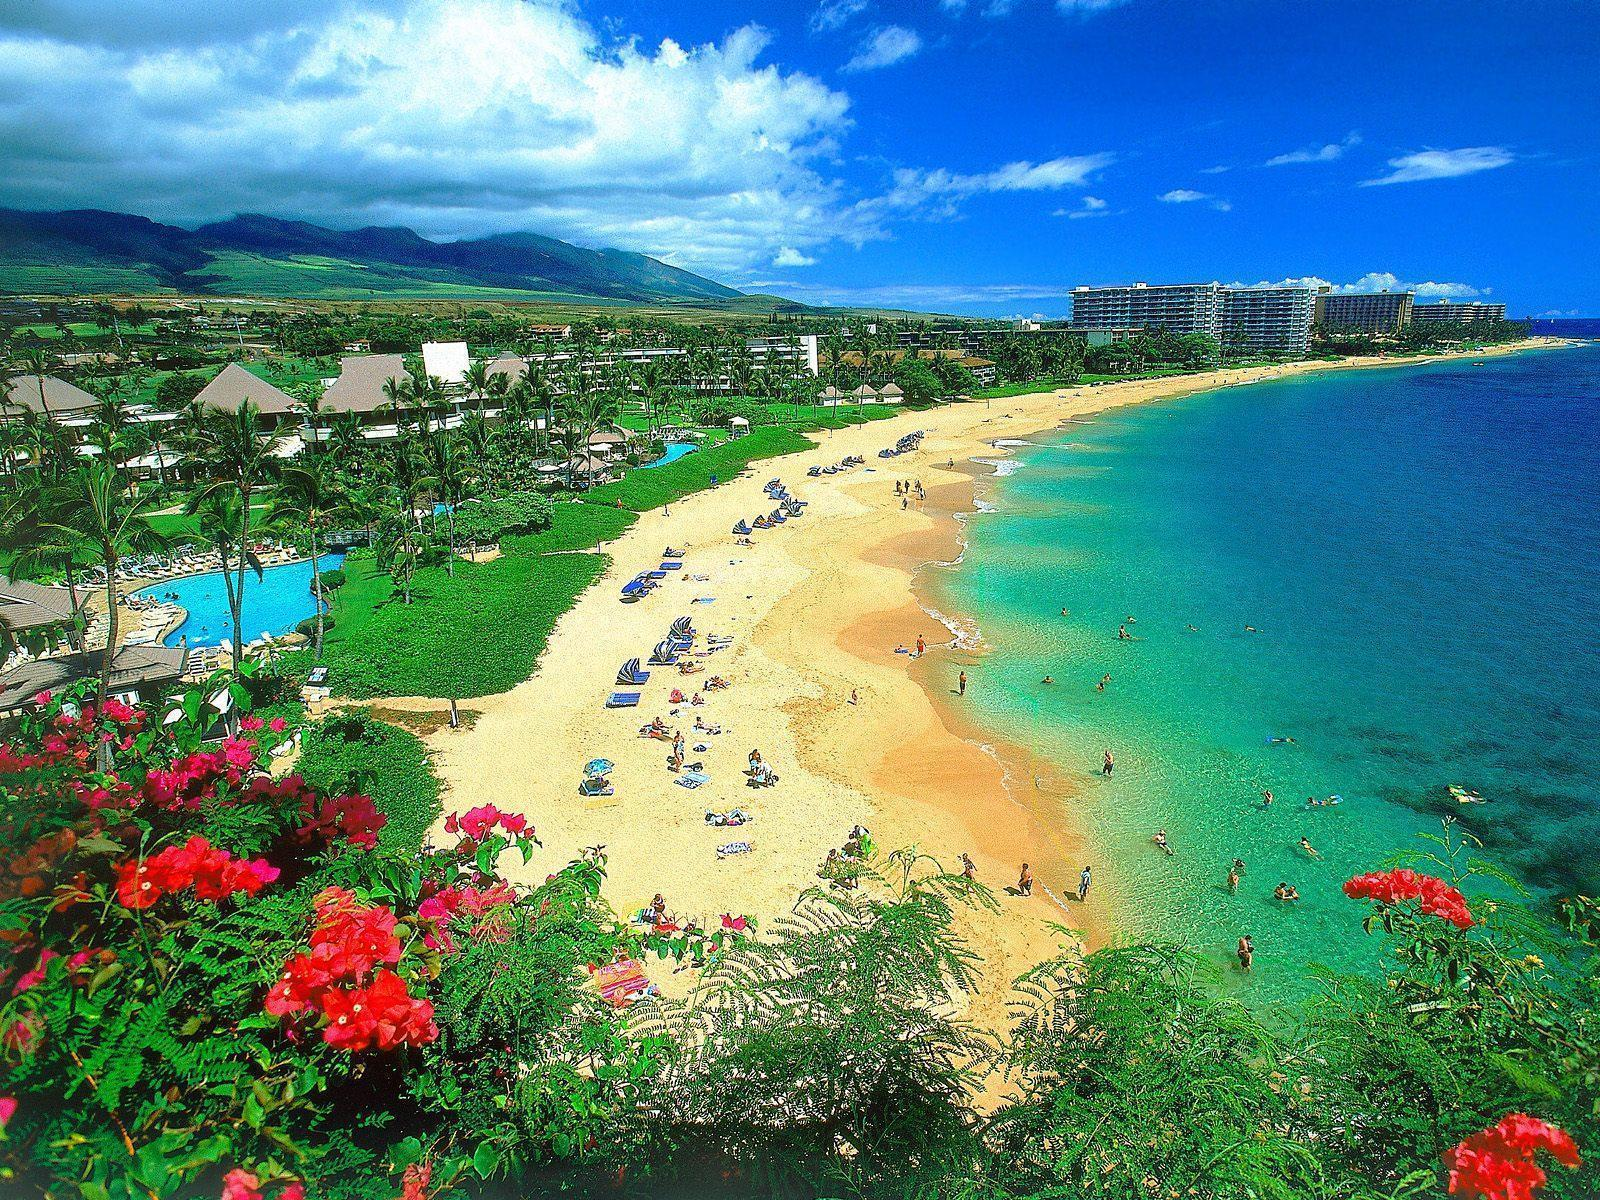 Kaanapali Beach Maui Hawaii Desktop Background   Hawaii 1600x1200